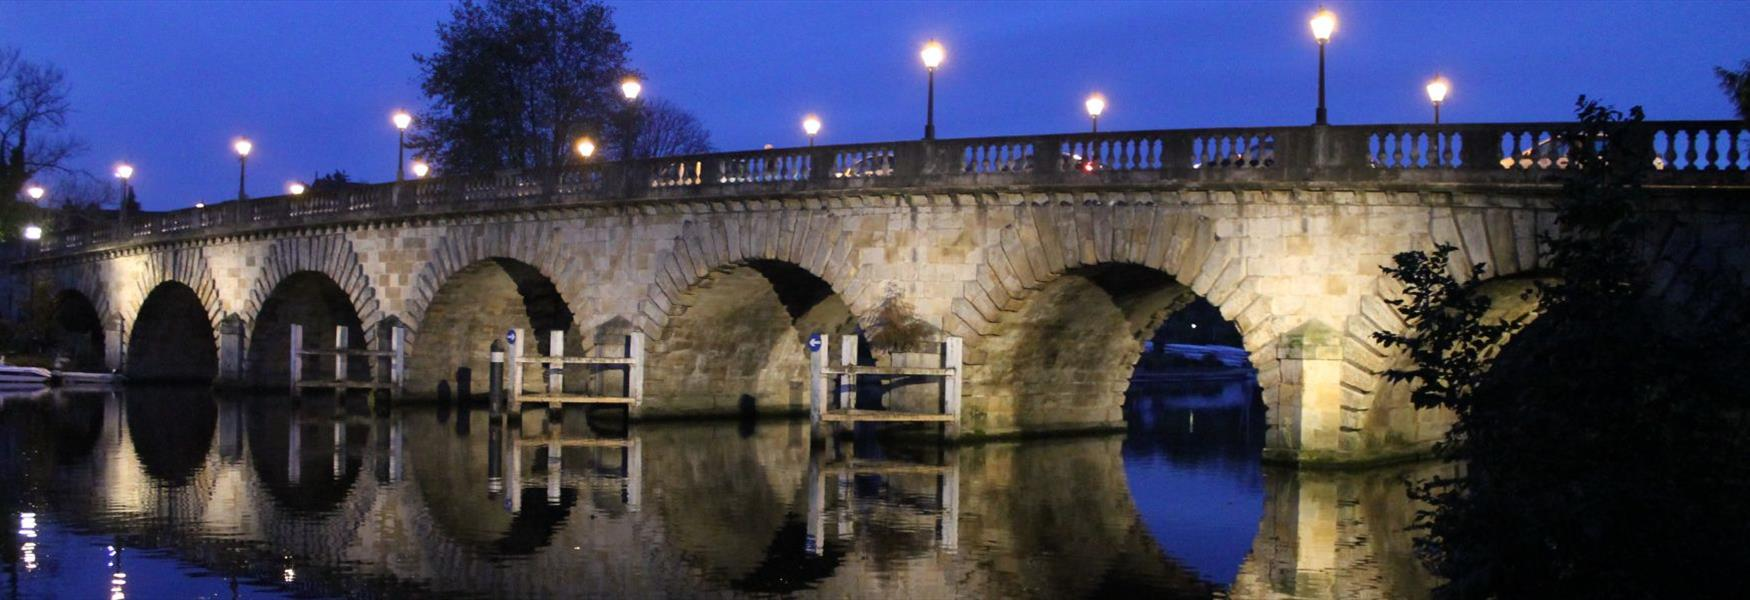 Maidenhead Bridge at Night